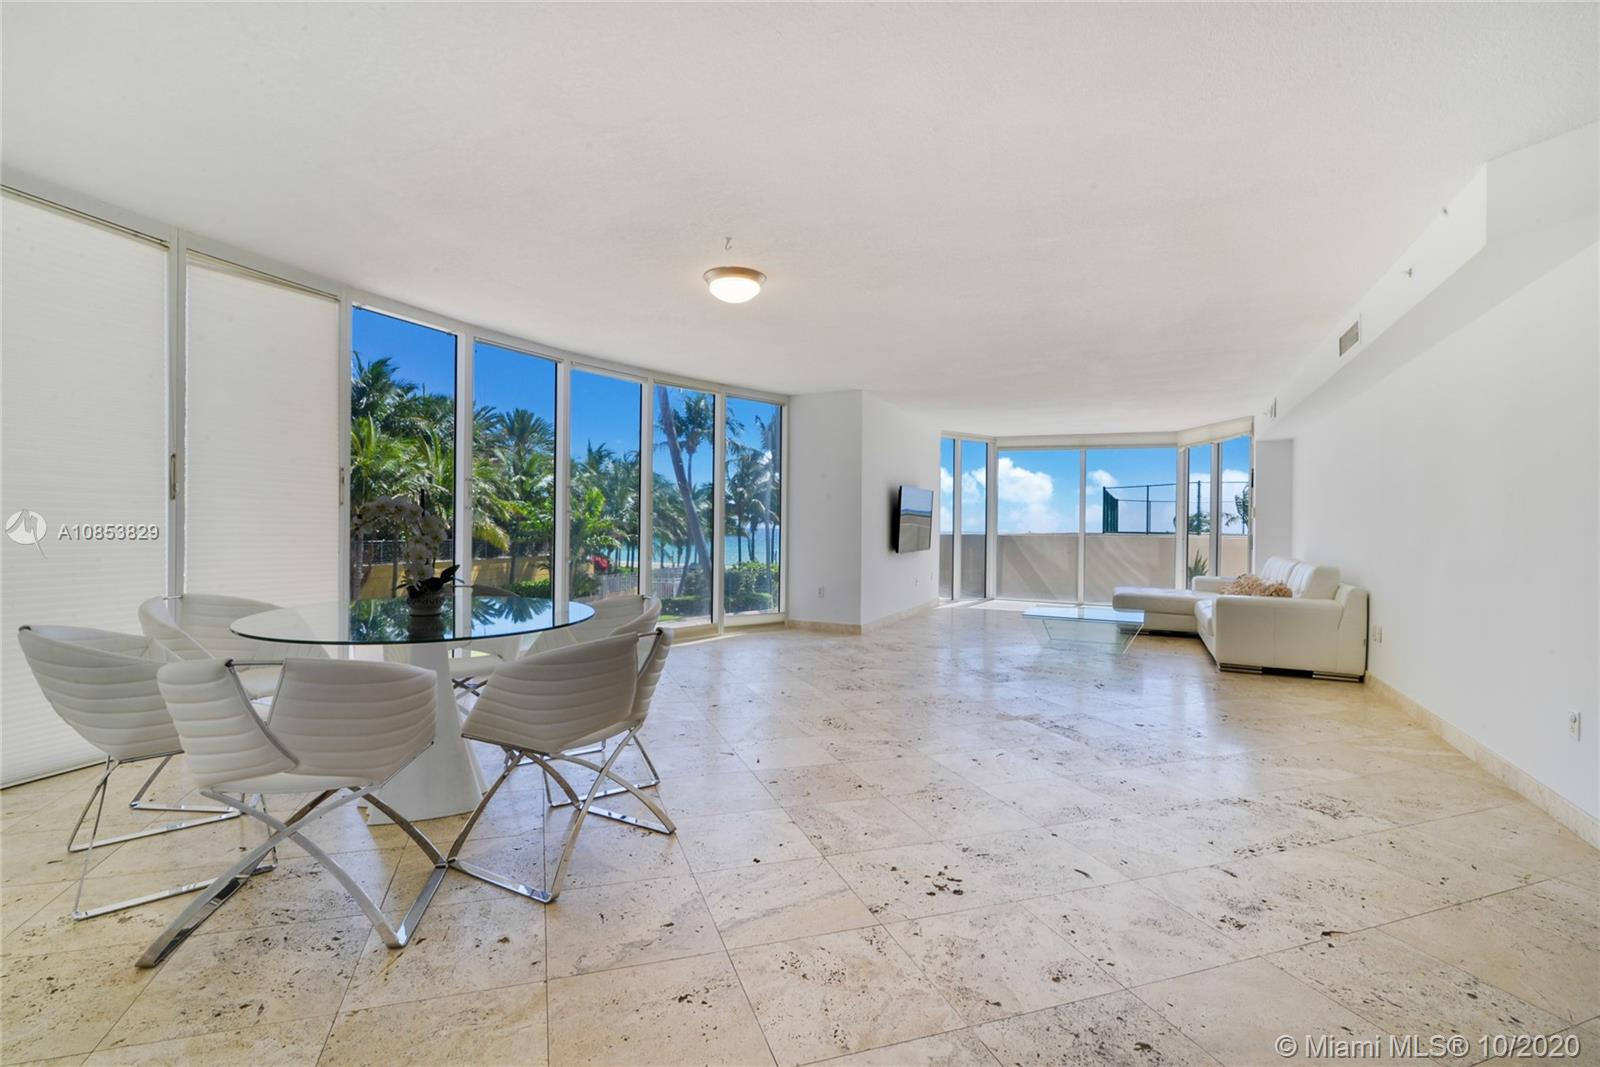 17555 Collins Ave, Sunny Isles Beach, Florida